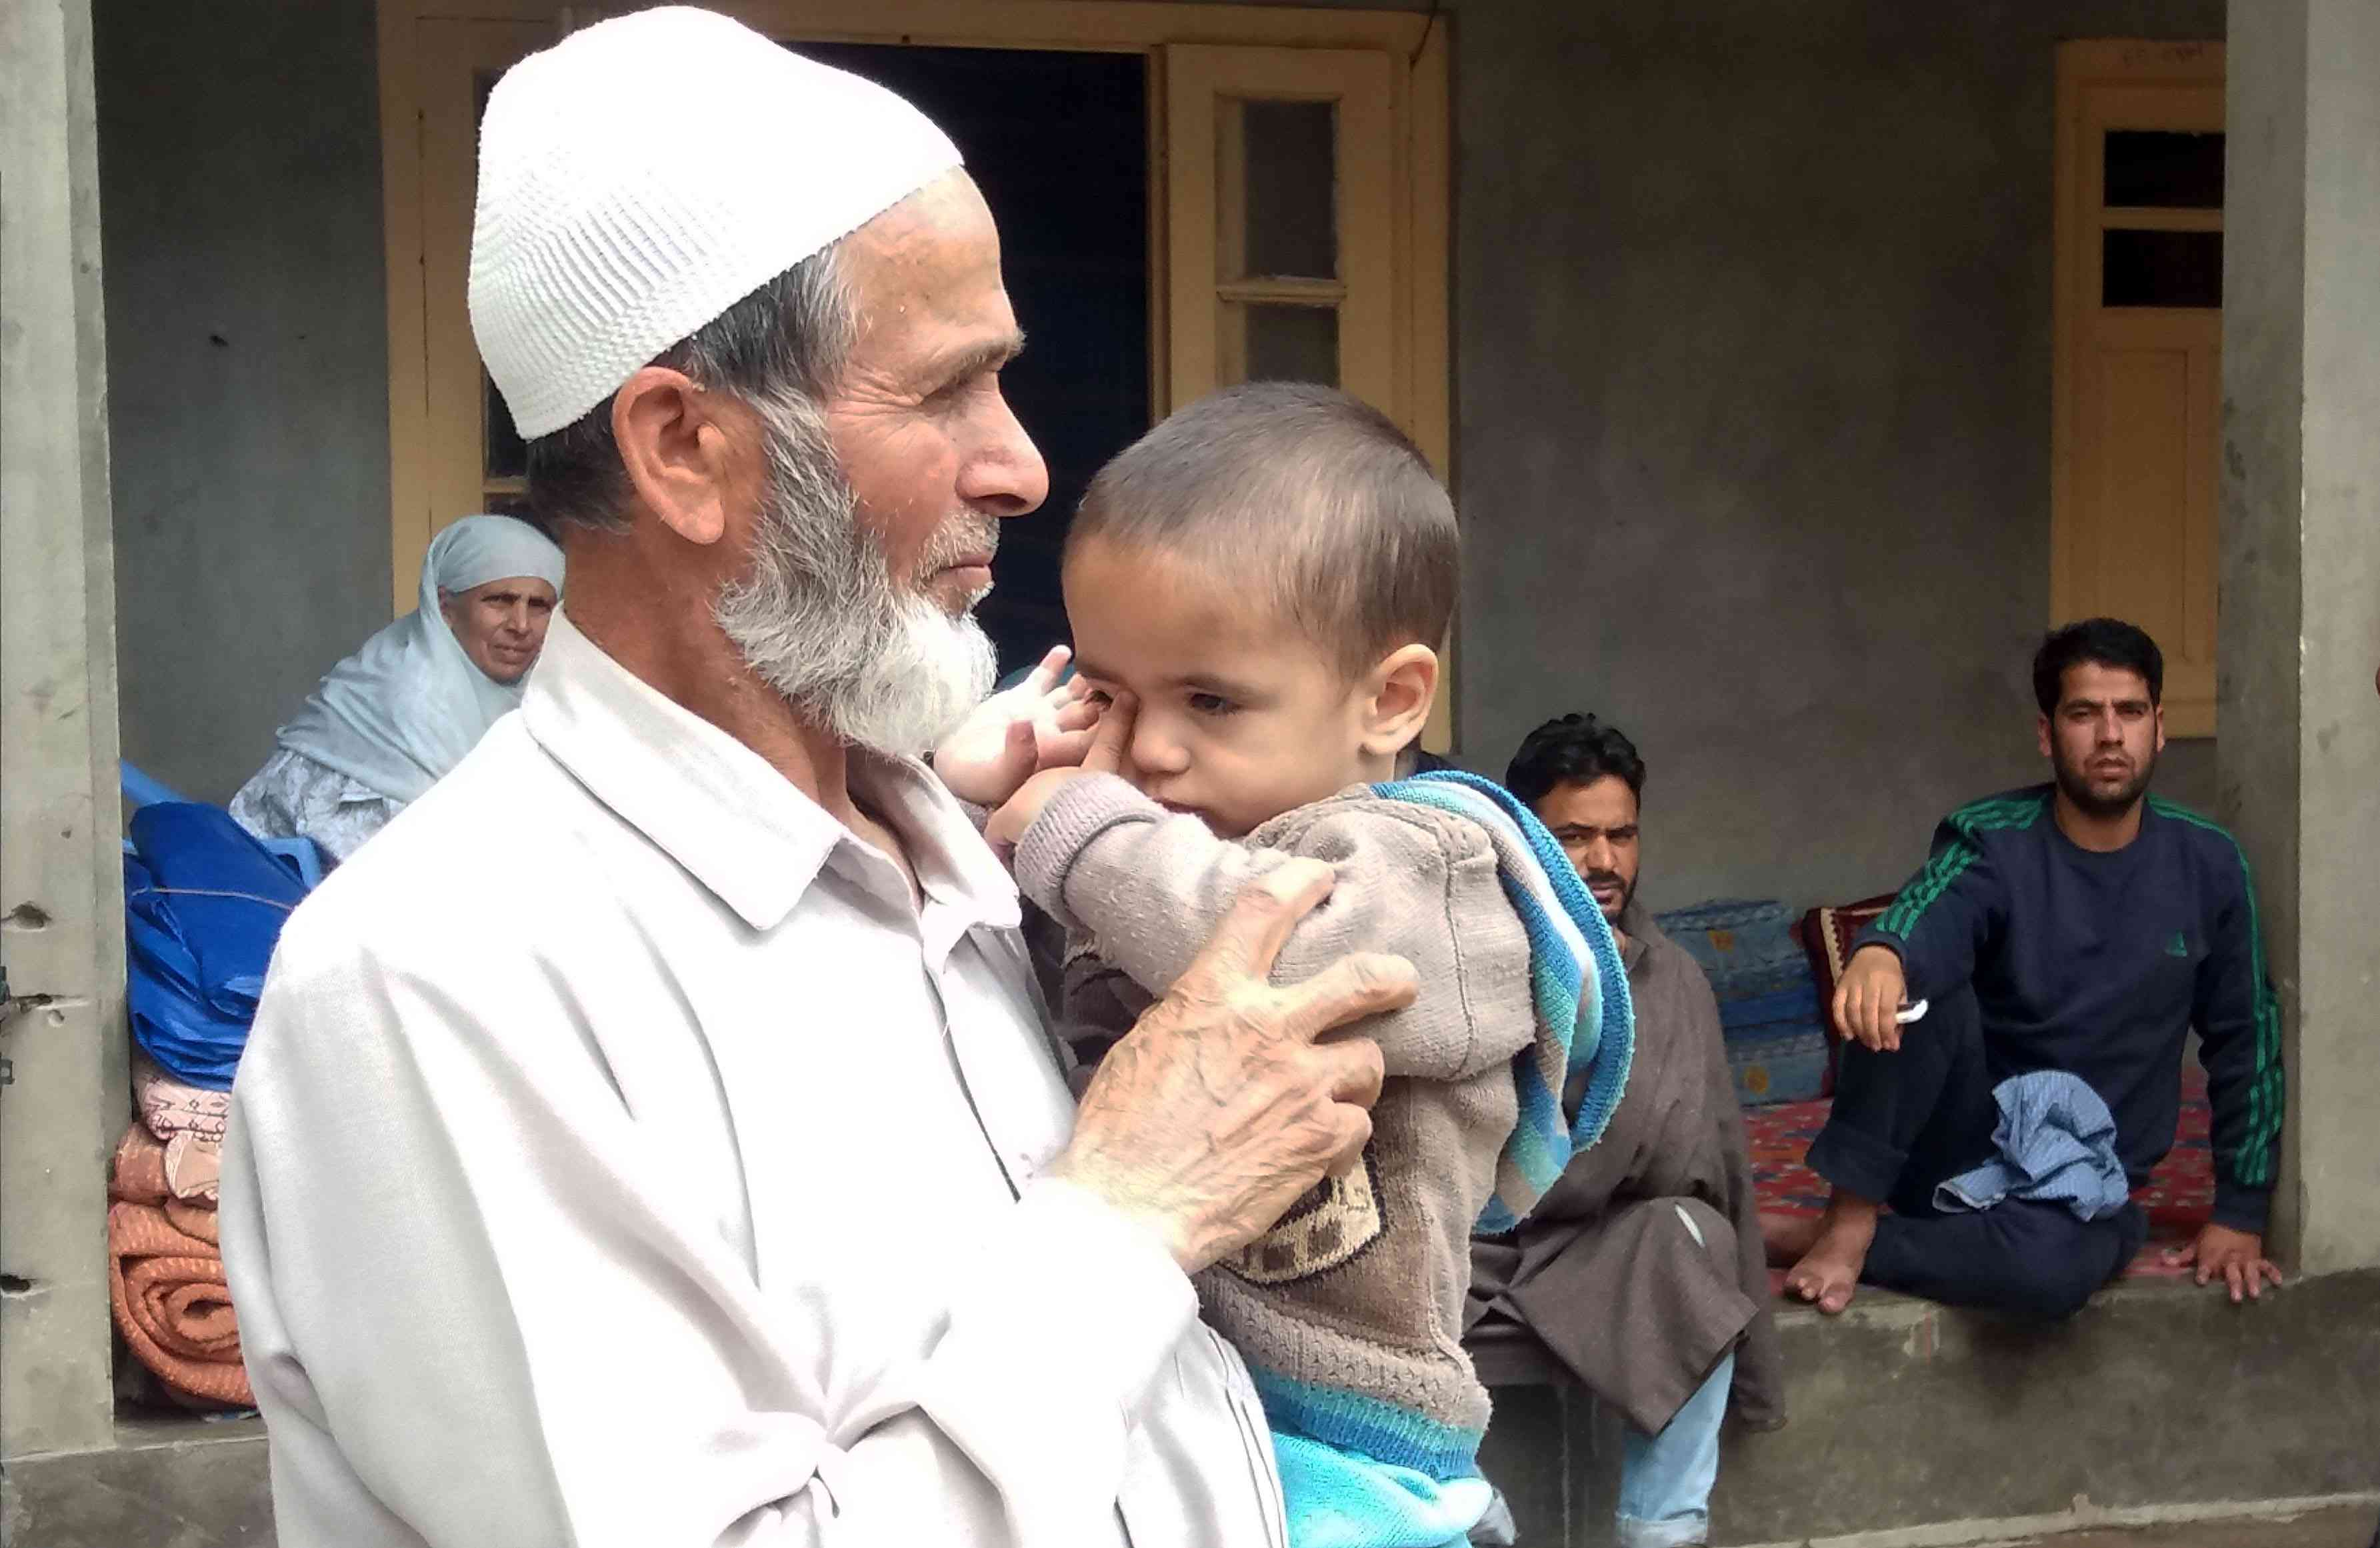 Shabir Ahmed Mangoo left behind a 15-month-old child in 2016. His father holds his grandson days after the raid in Shar-i-Shali